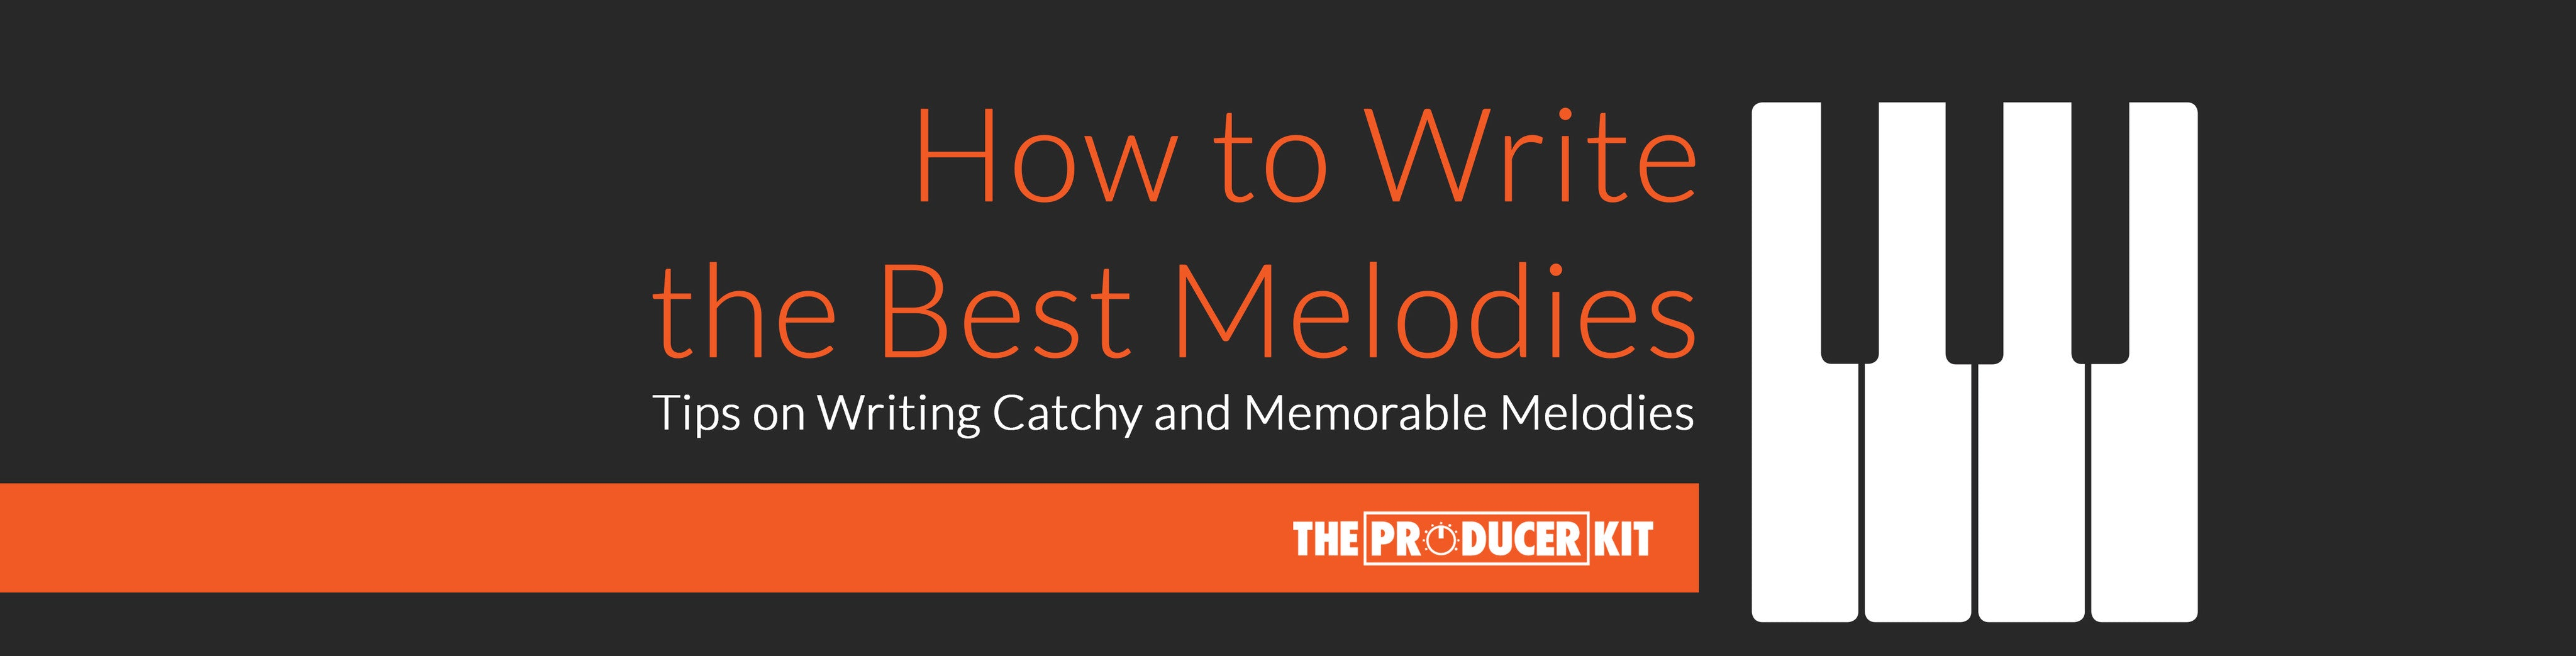 How to Write the Best Melodies | The Producer Kit